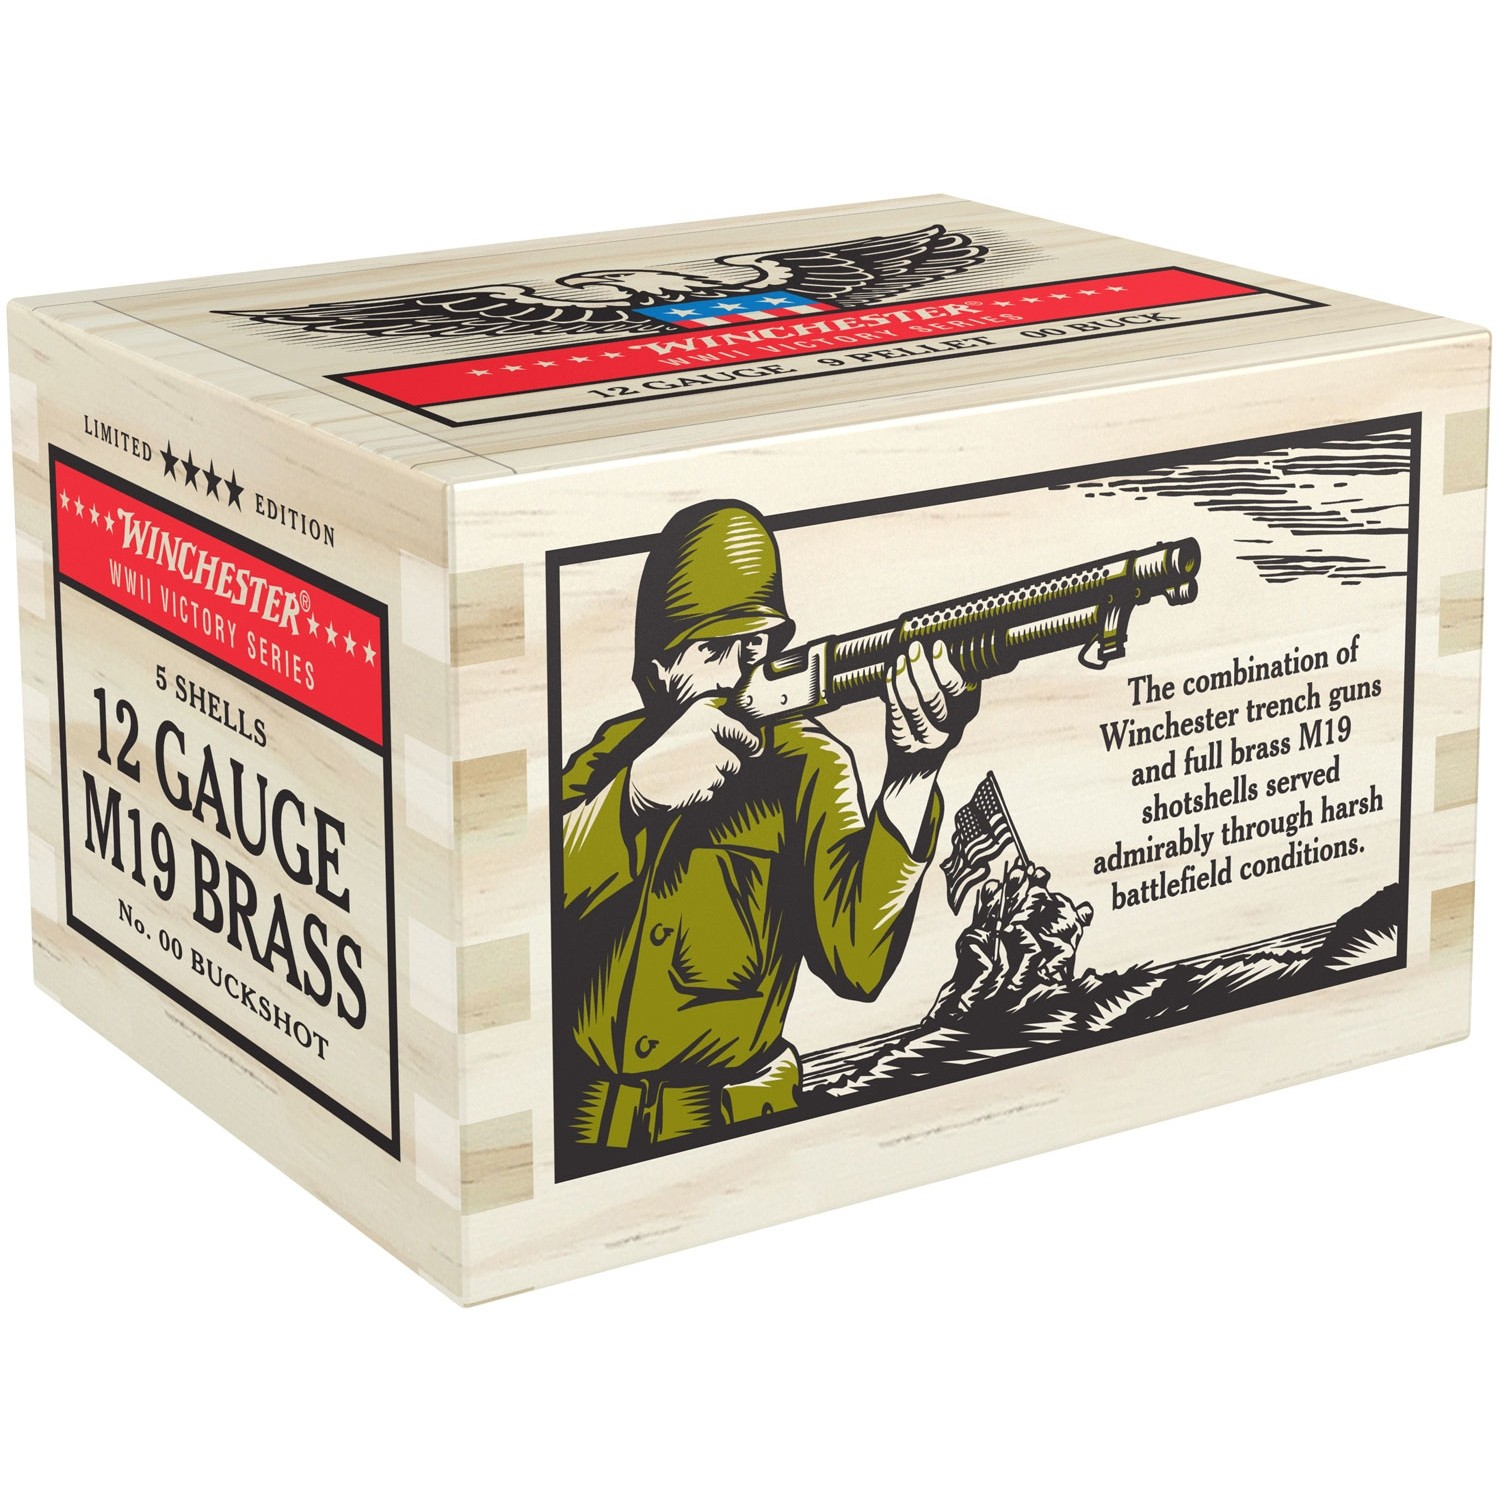 Winchester WWII Victory Series 12 Gauge 00 Buck 5rd Ammo